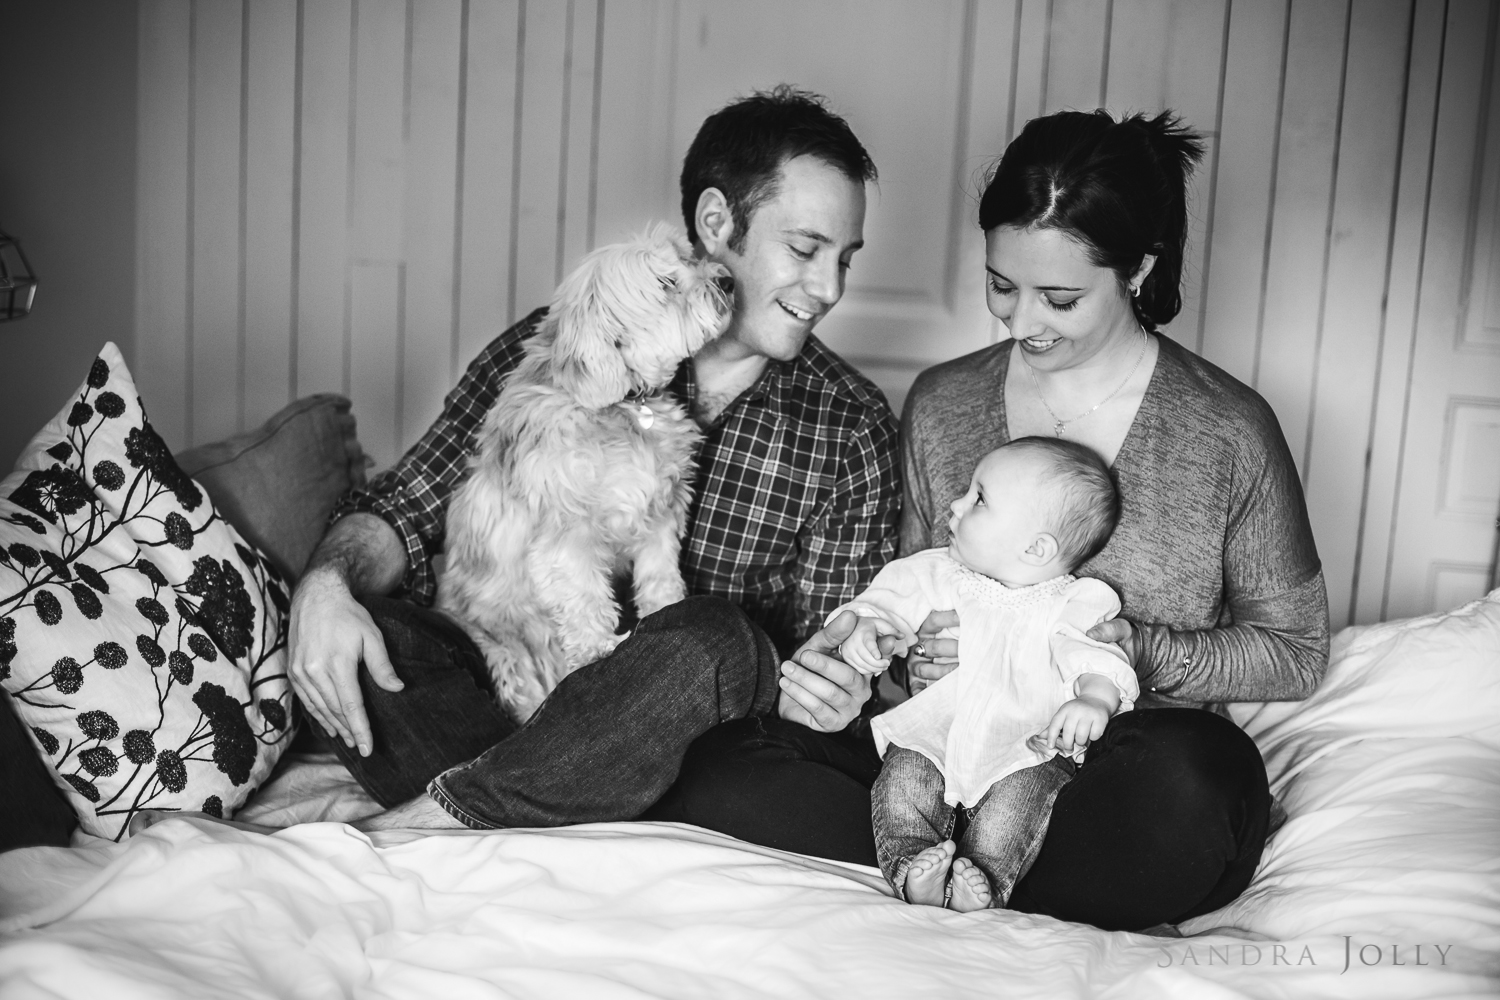 I love this family picture! Can't wait to see the big print the family ordered.